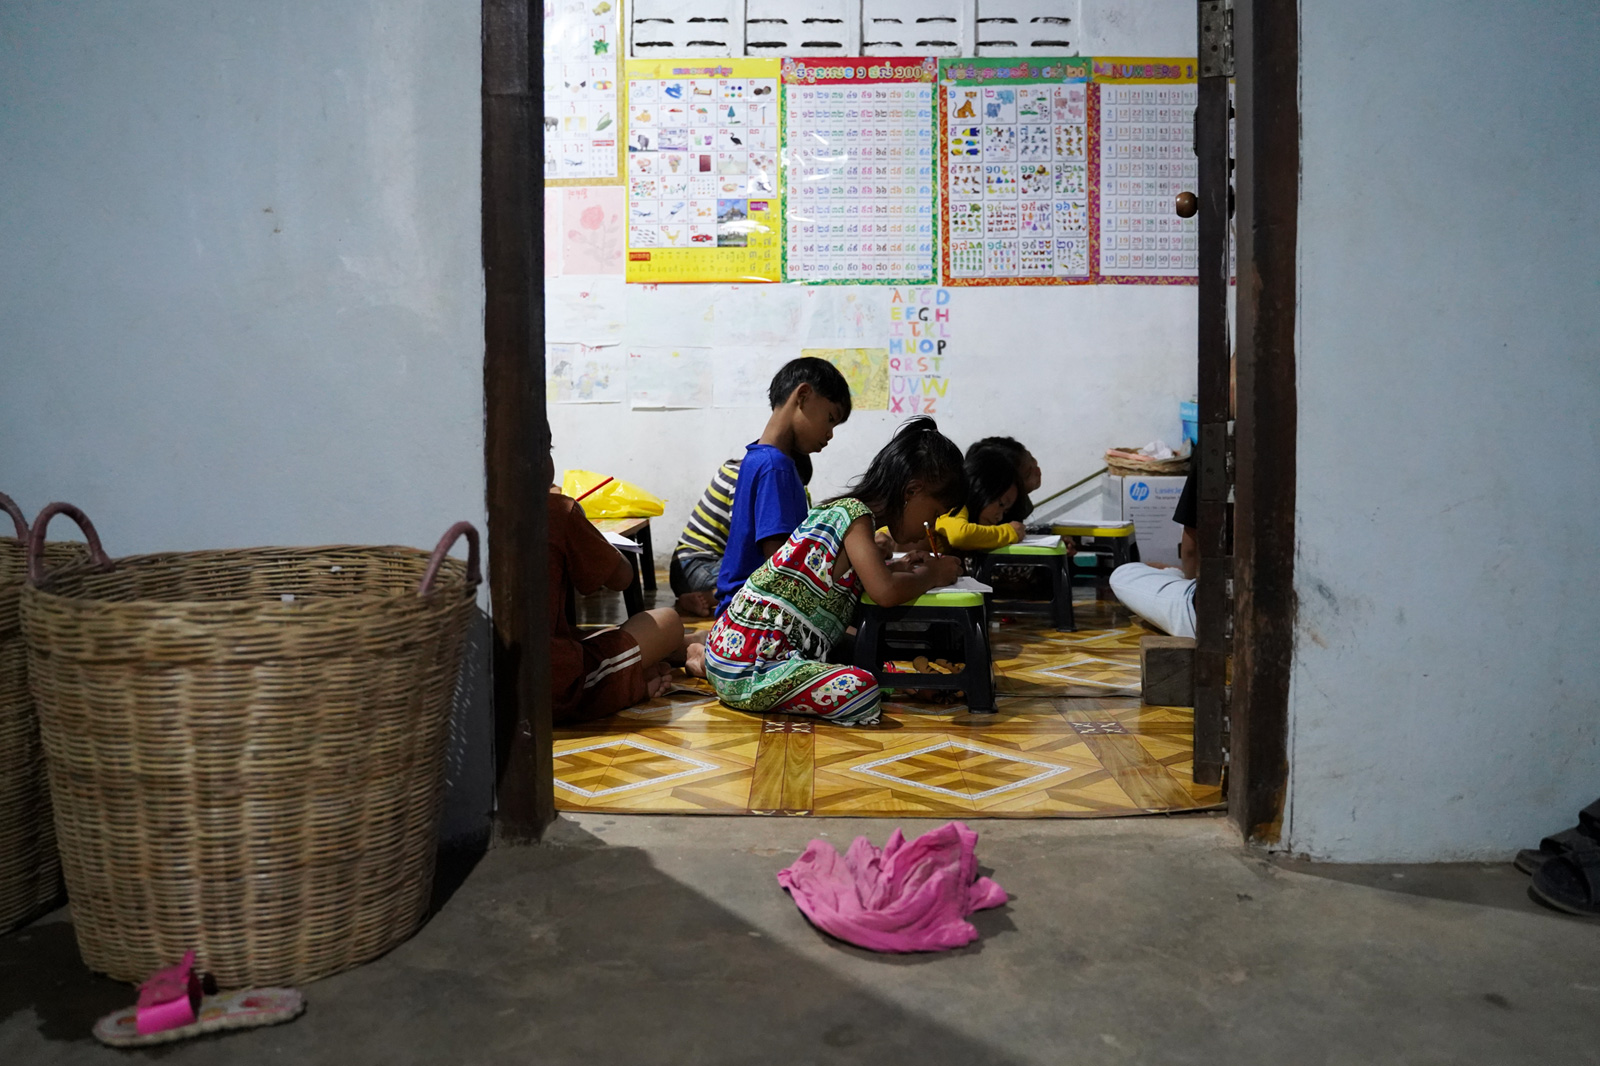 Daily Khmer and English classes are held at the Village Library in Roha Village. The library is located in an extra room of the librarian's house.